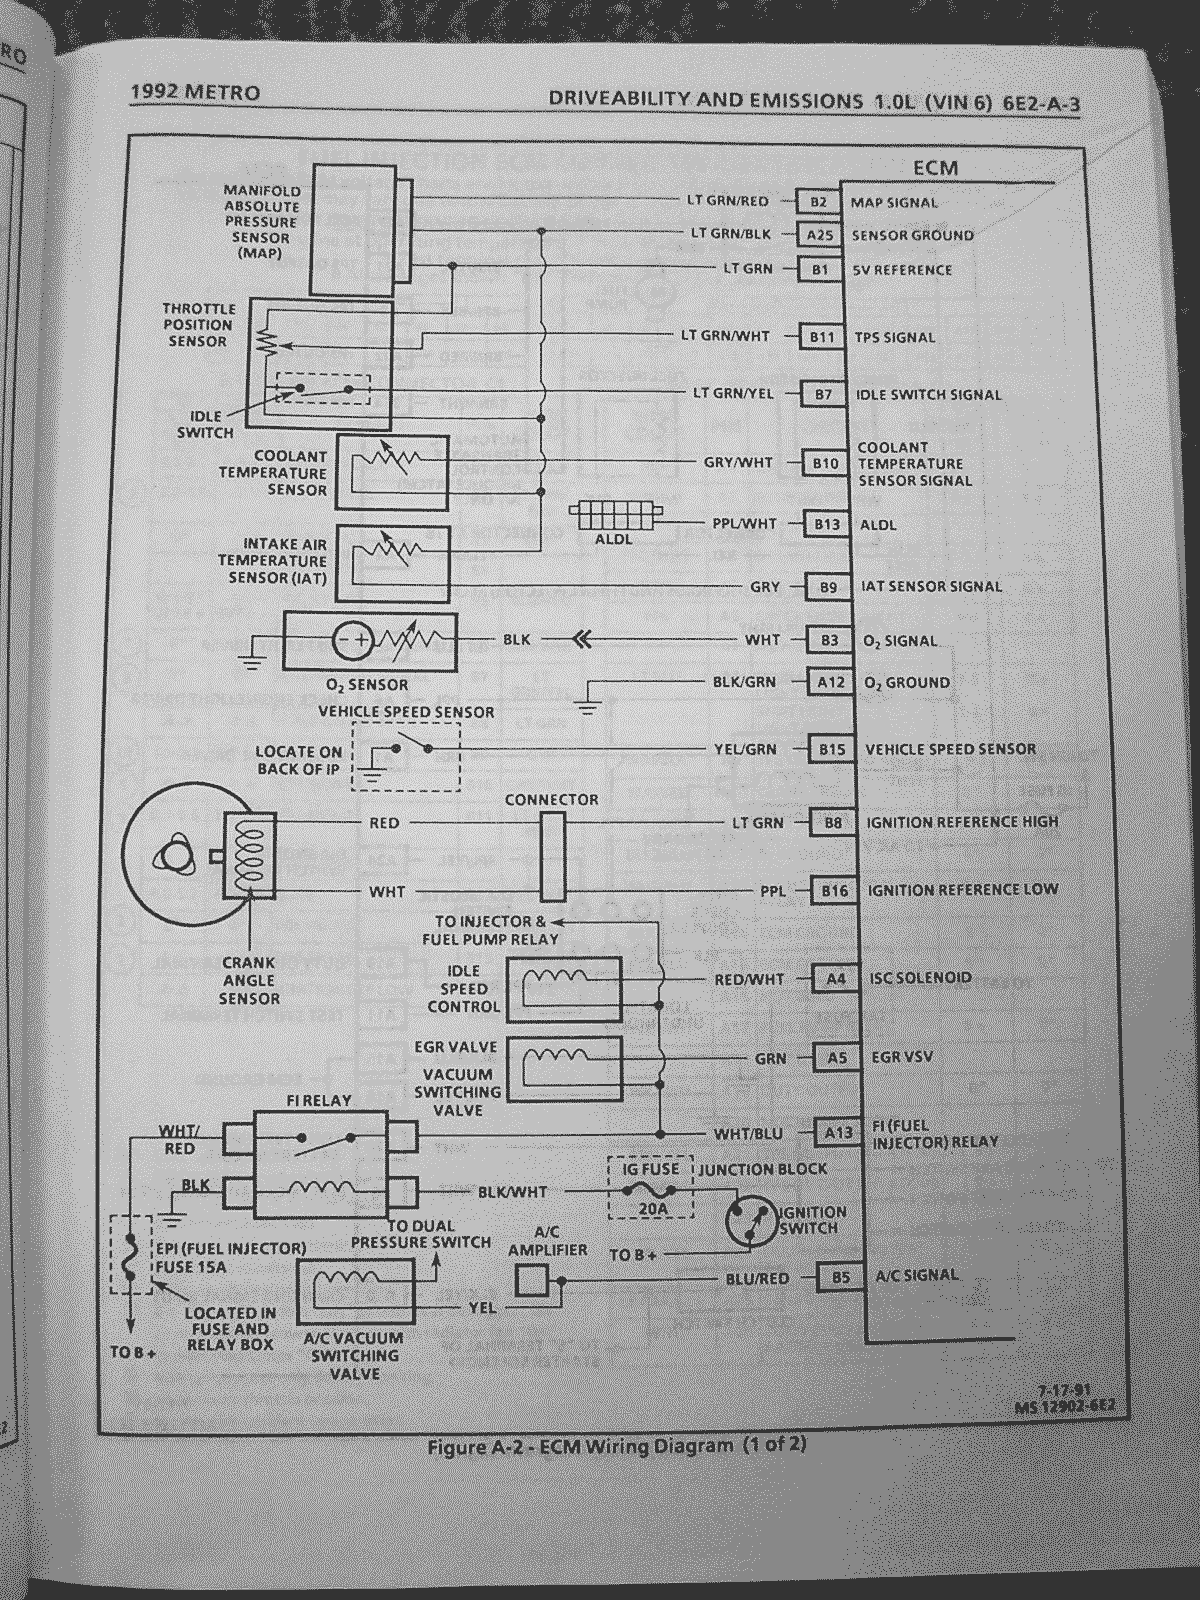 2012 suzuki swift wiring diagram geo metro and suzuki swift wiring diagrams – metroxfi.com 94 suzuki swift wiring diagram